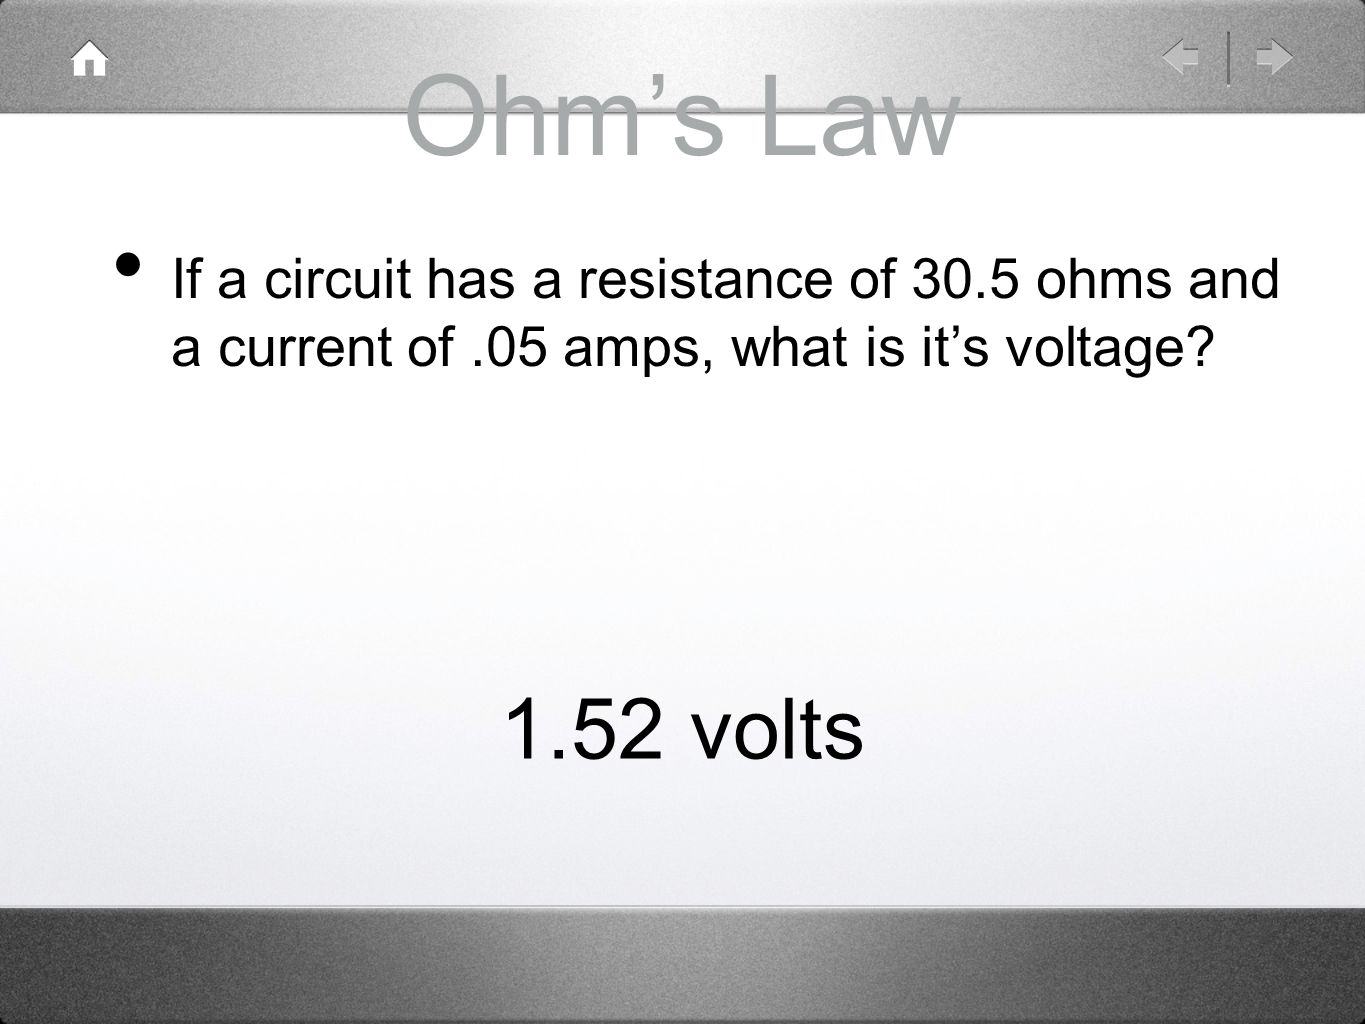 Ohm's Law If a circuit has a resistance of 30.5 ohms and a current of .05 amps, what is it's voltage